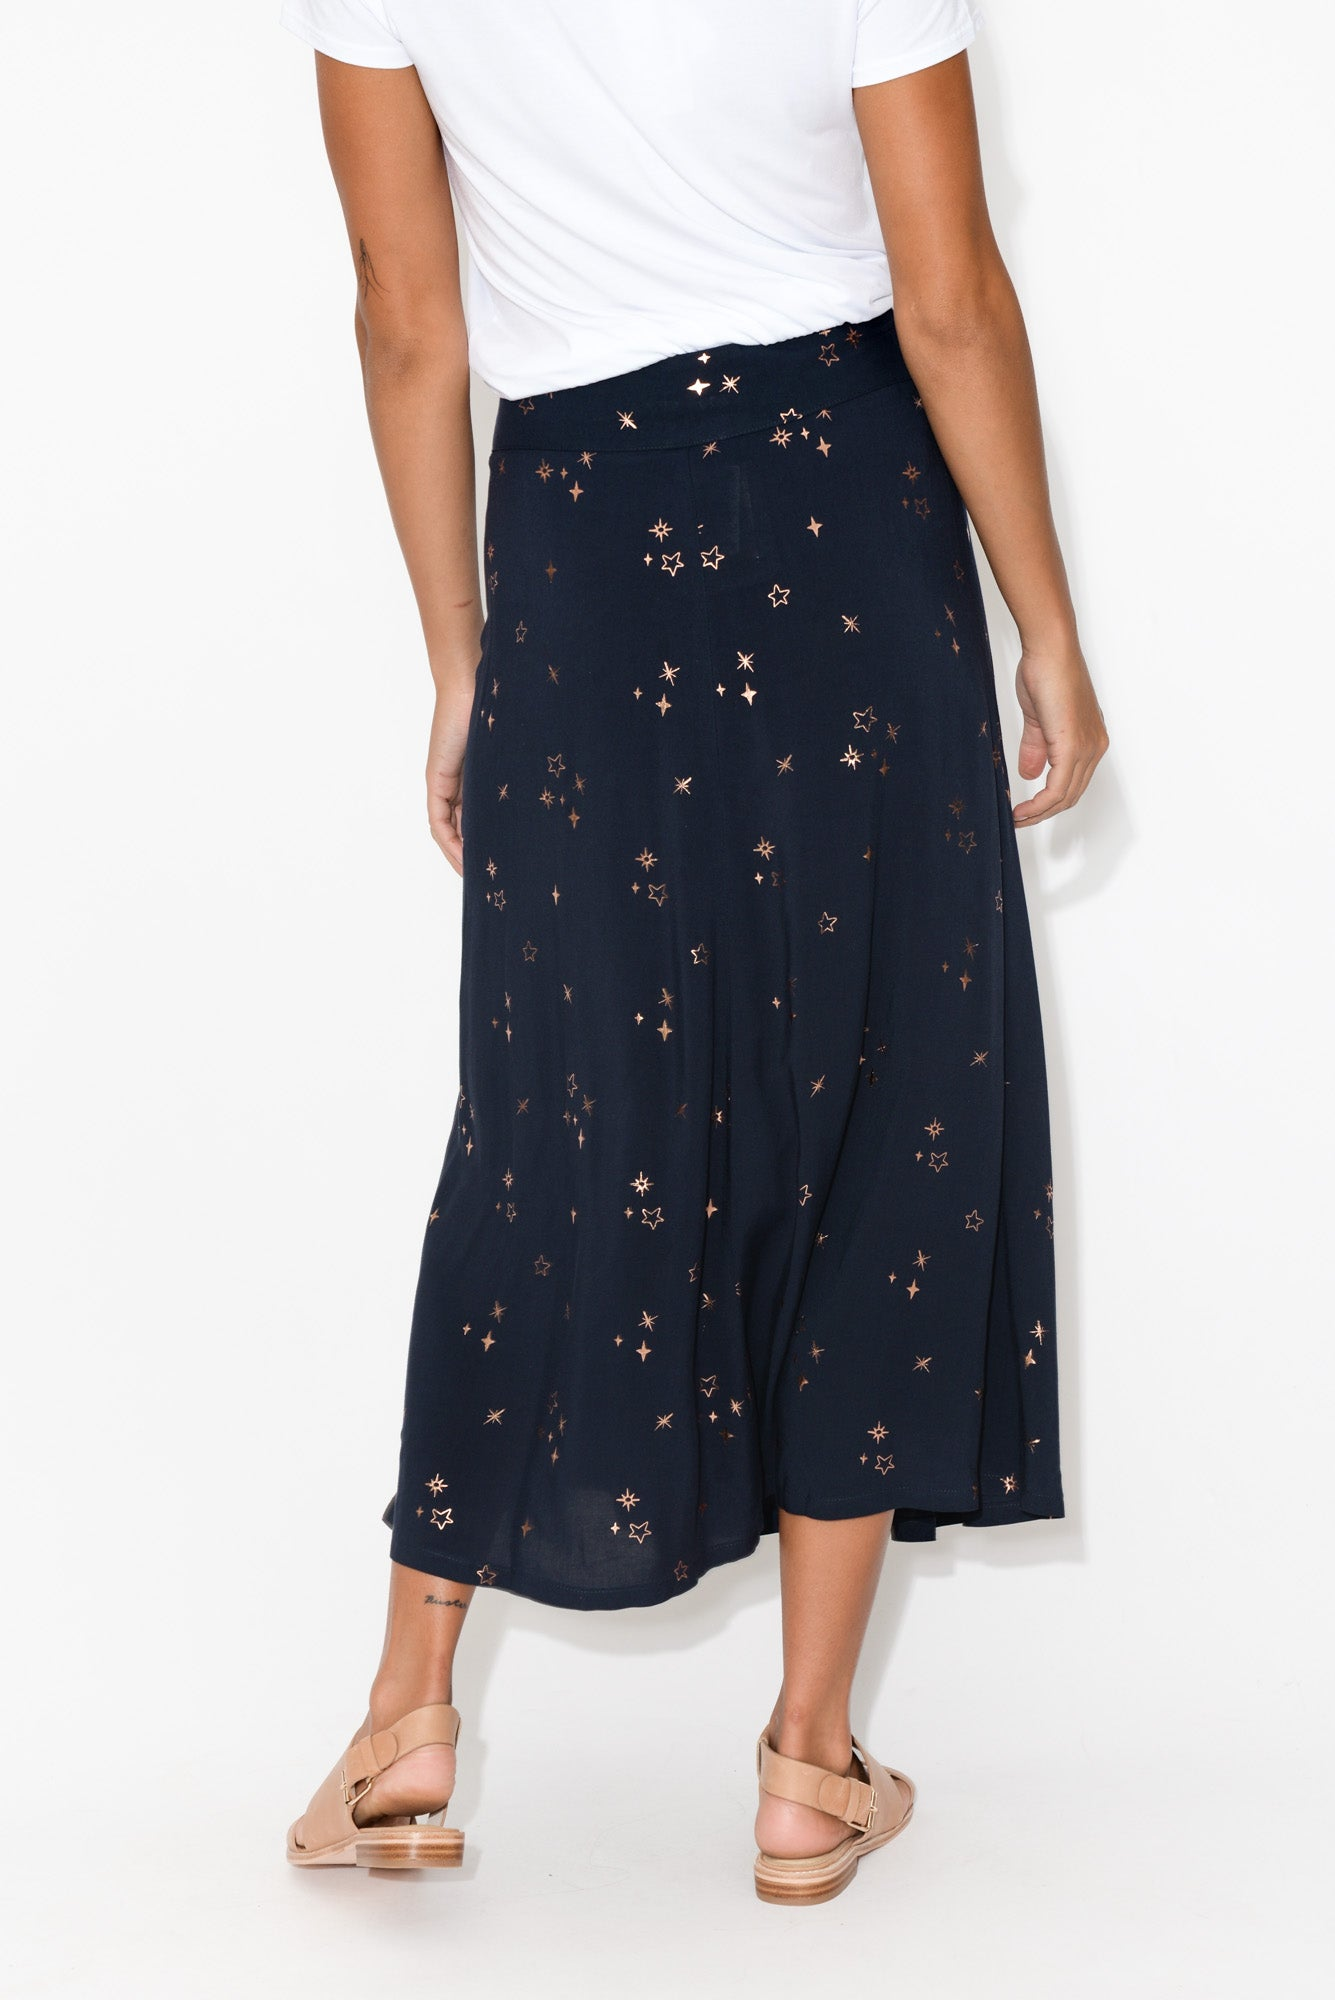 Celestial Navy Star Skirt